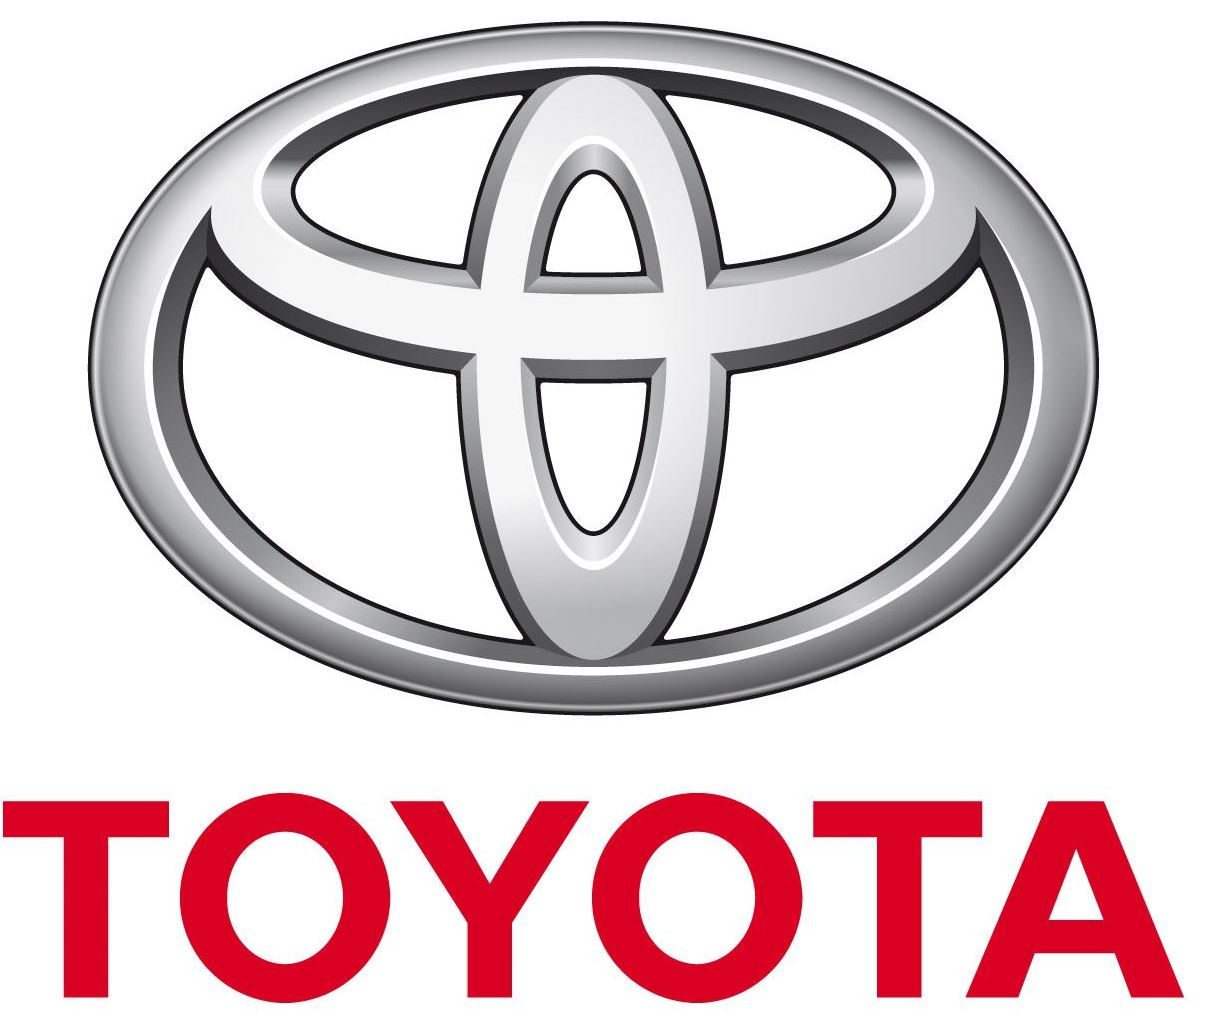 Toyota Logo, Toyota Car Symbol Meaning And History